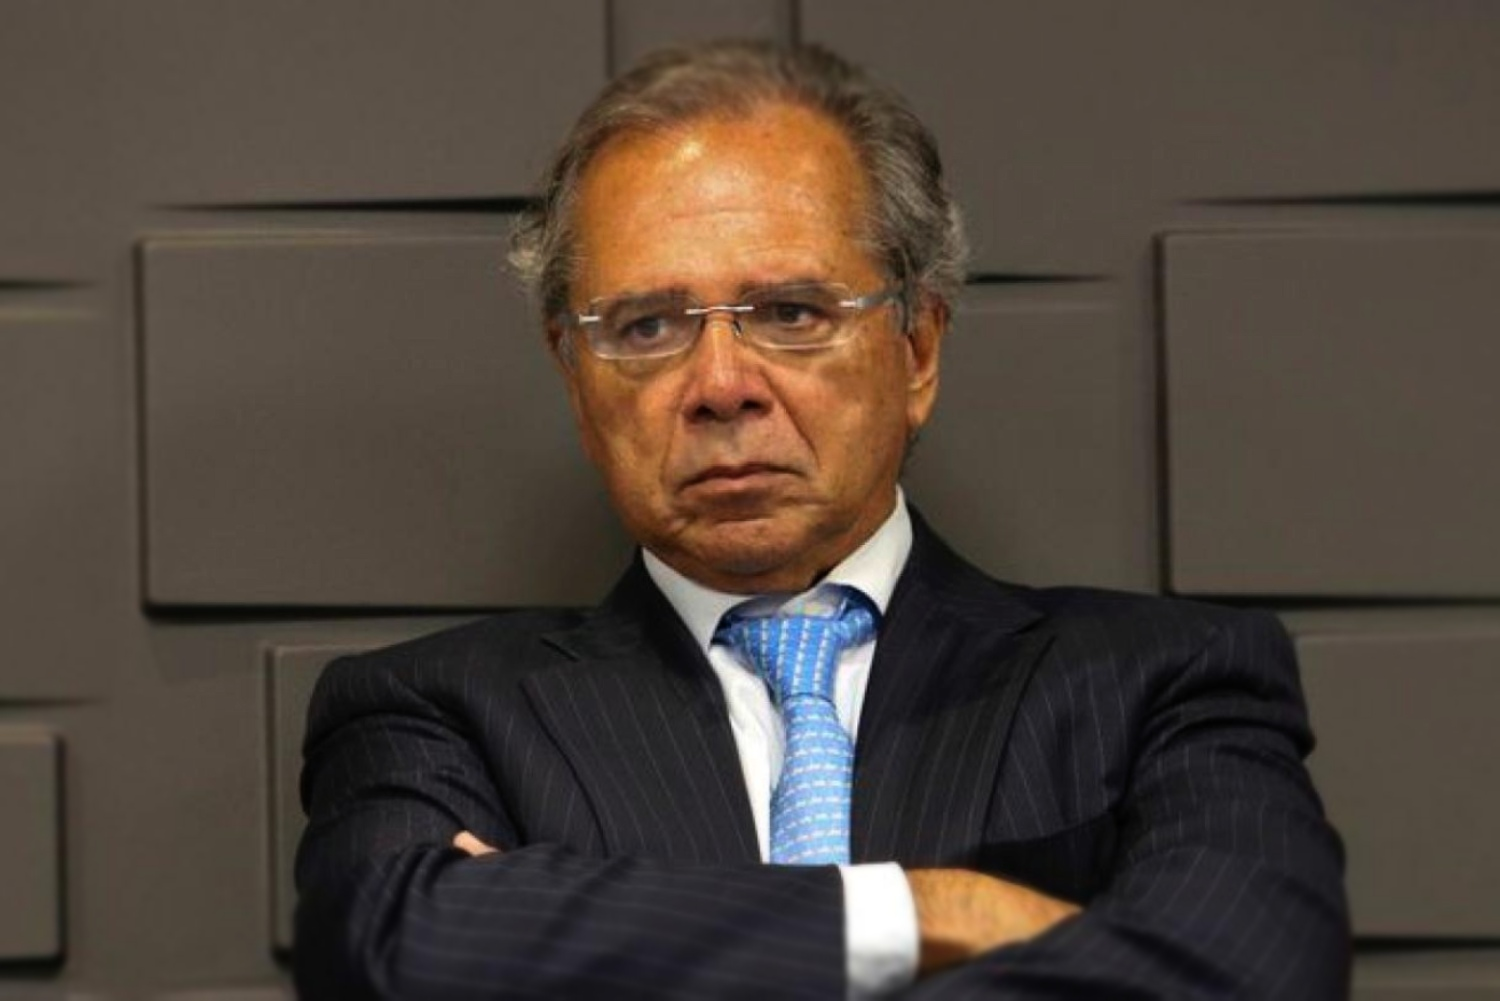 Paulo Guedes